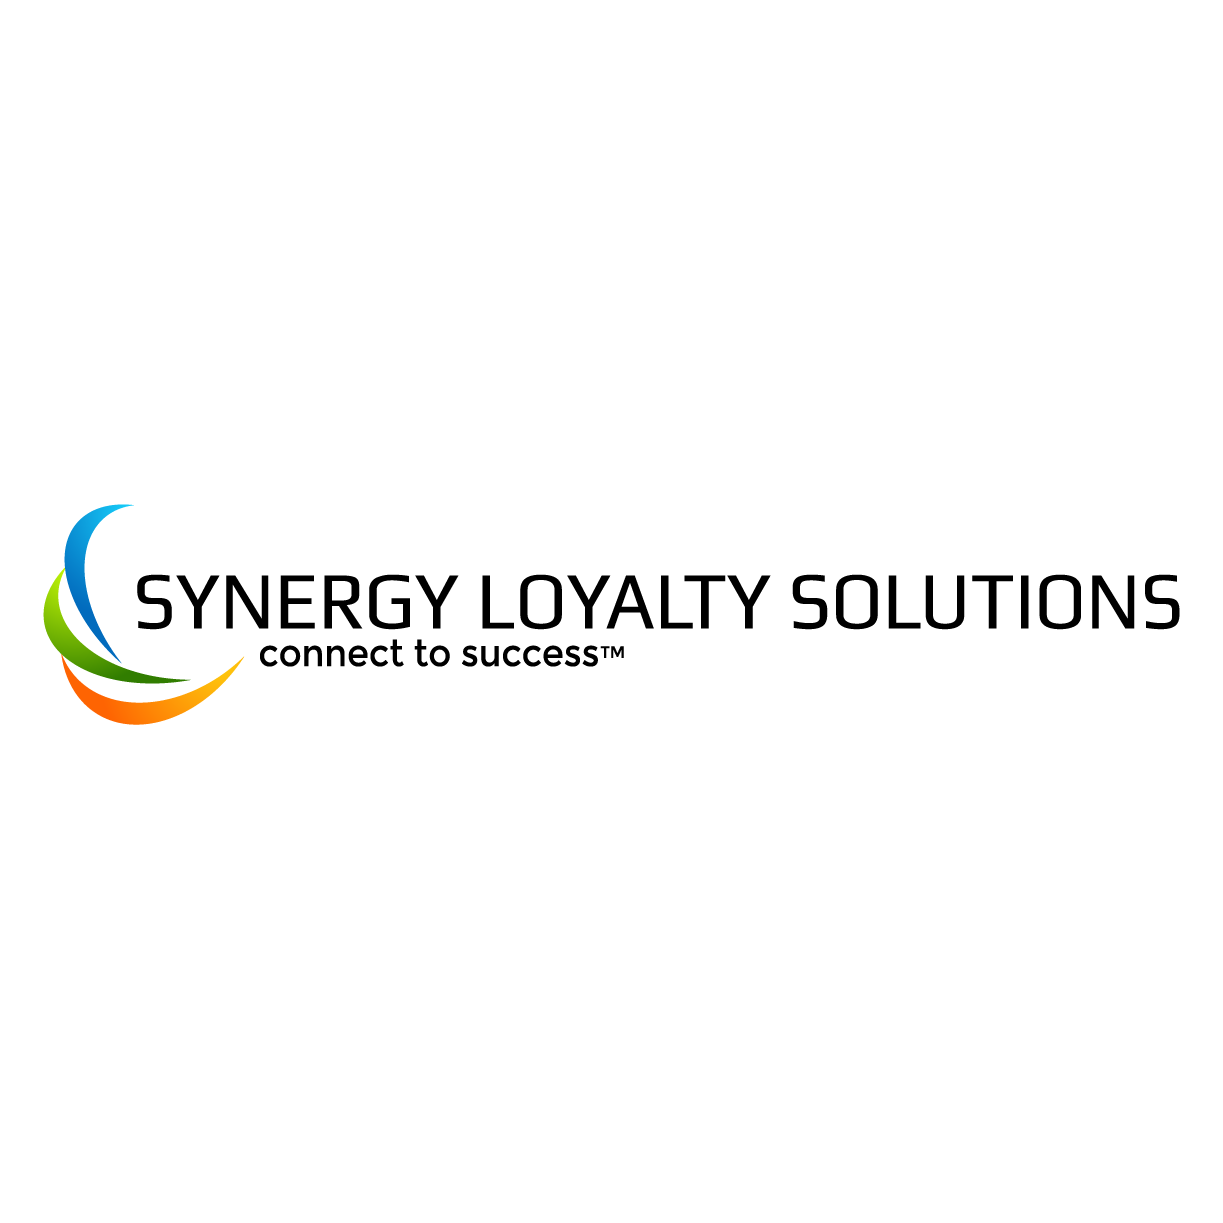 Synergy Loyalty Solutions